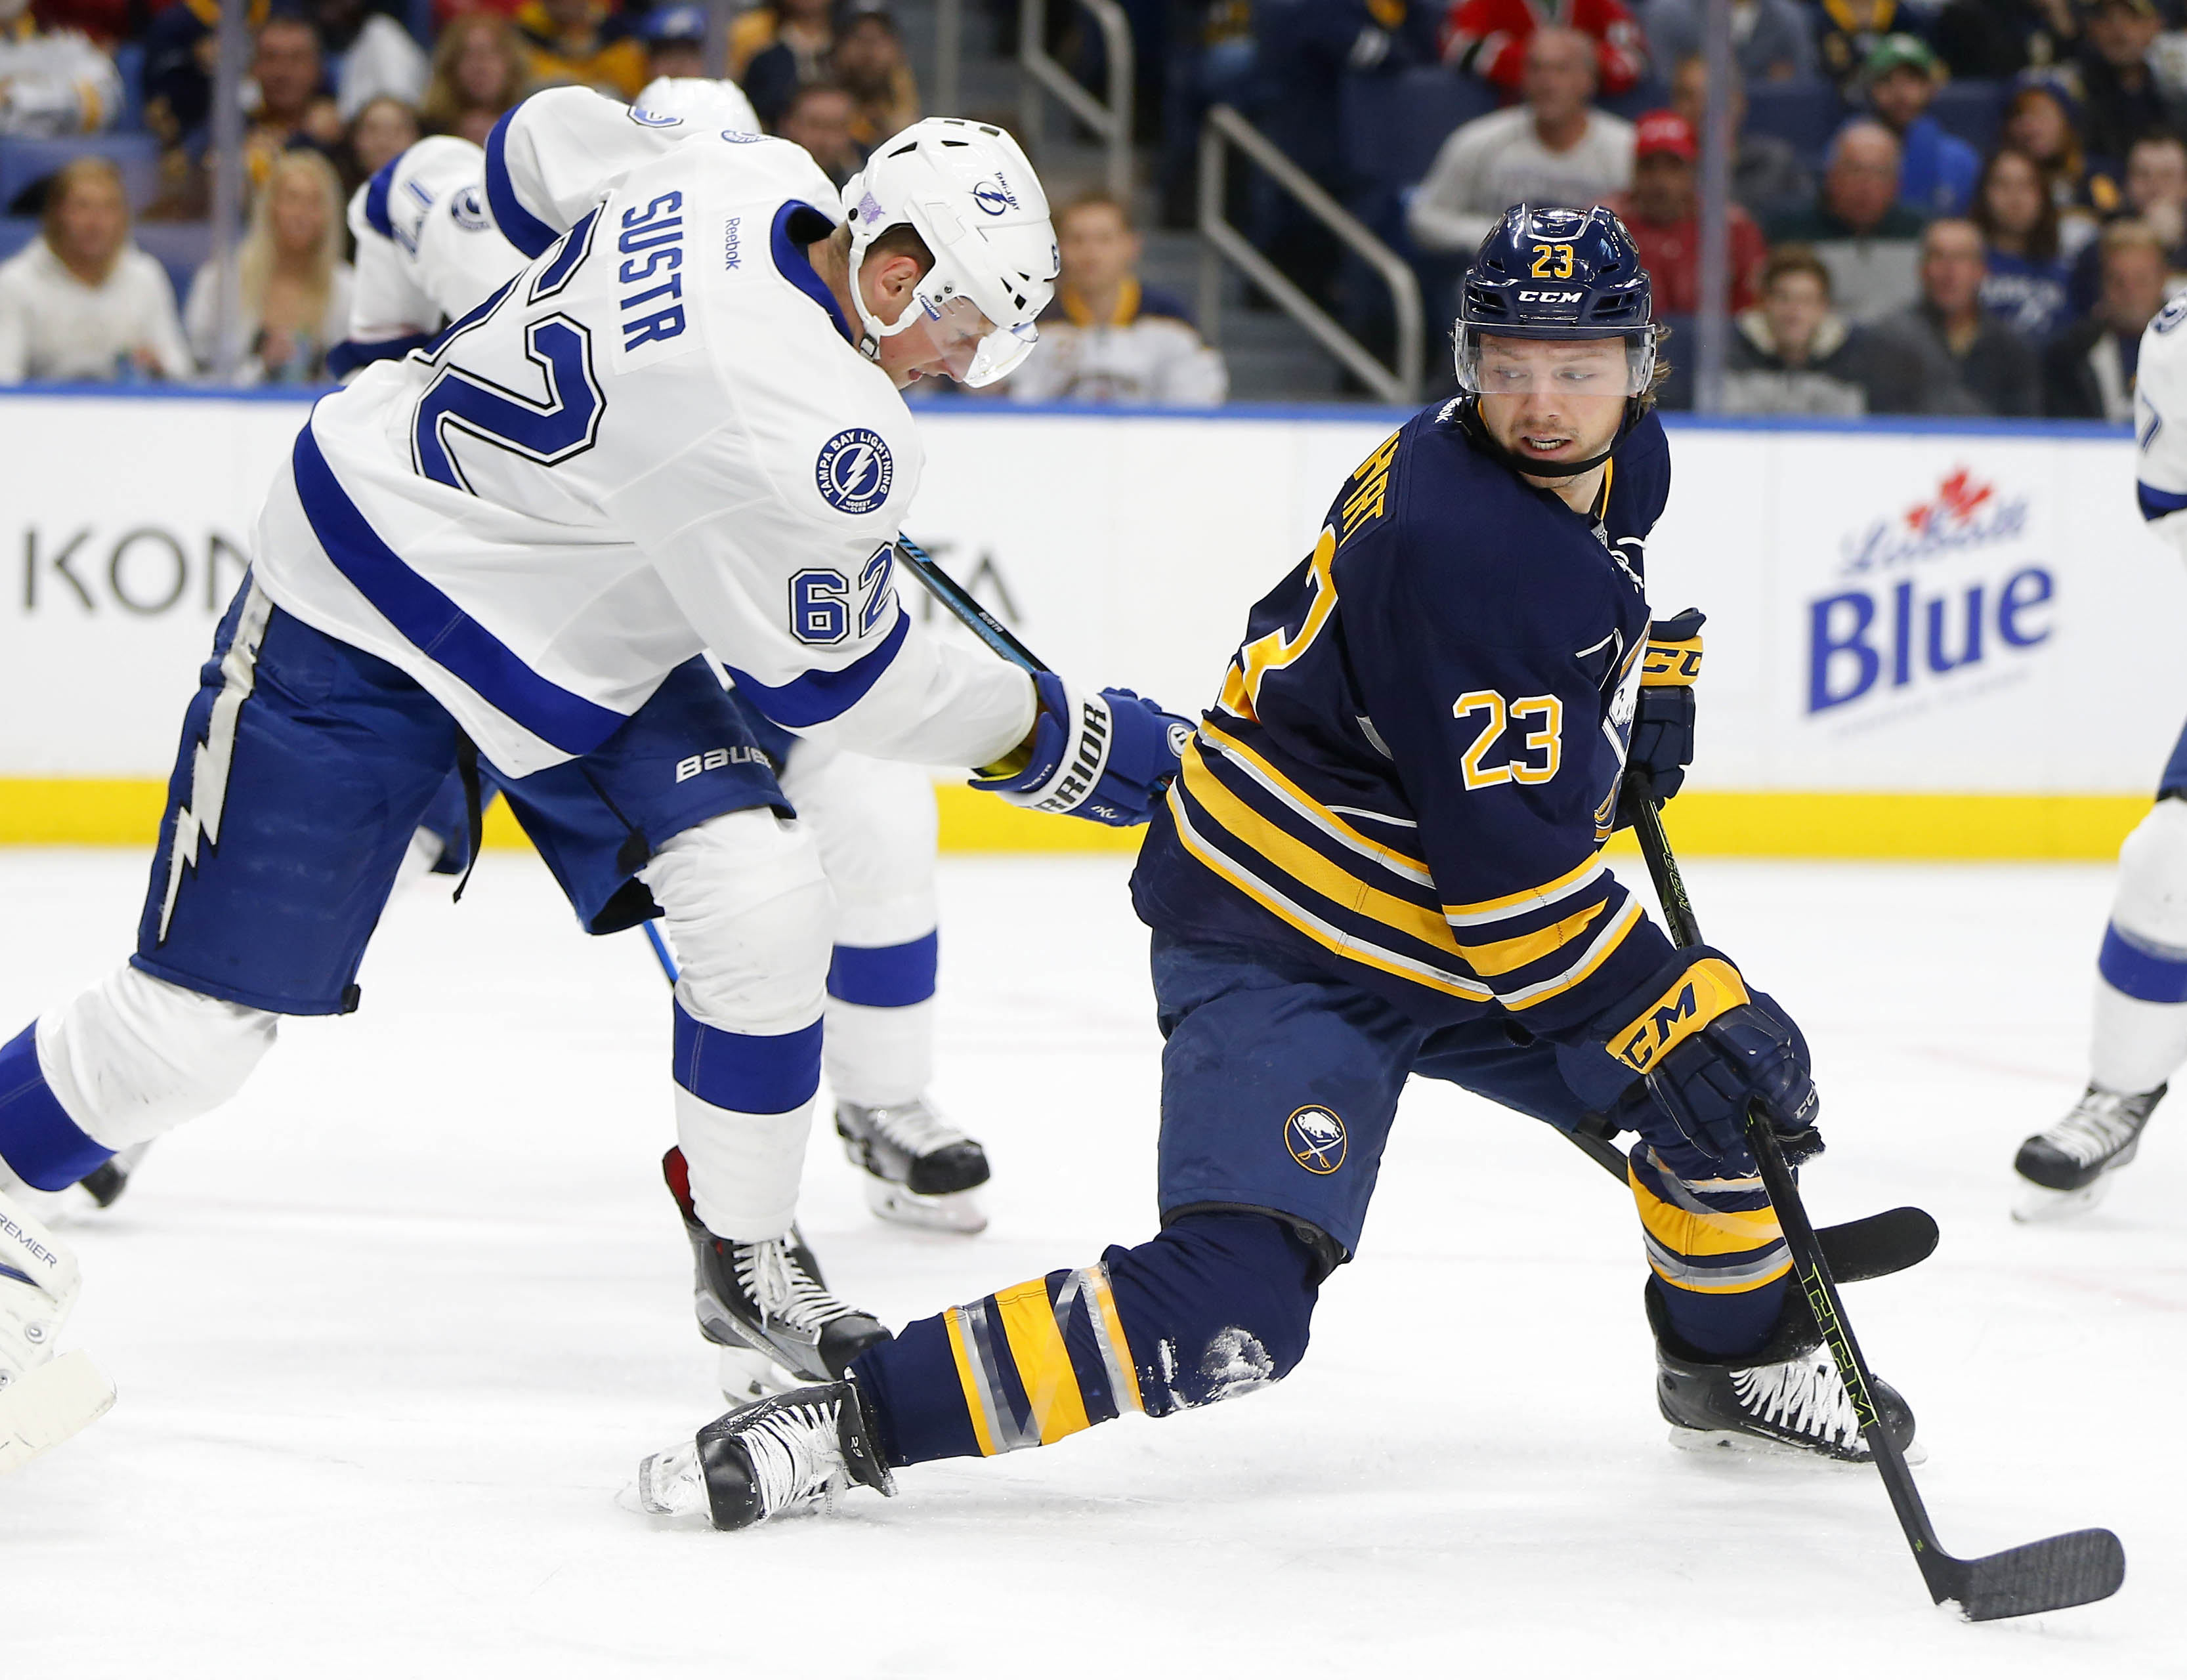 Sam Reinhart looks for a rebound in front as he is defended by Andrej Sustr. (Mark Mulville/Buffalo News)